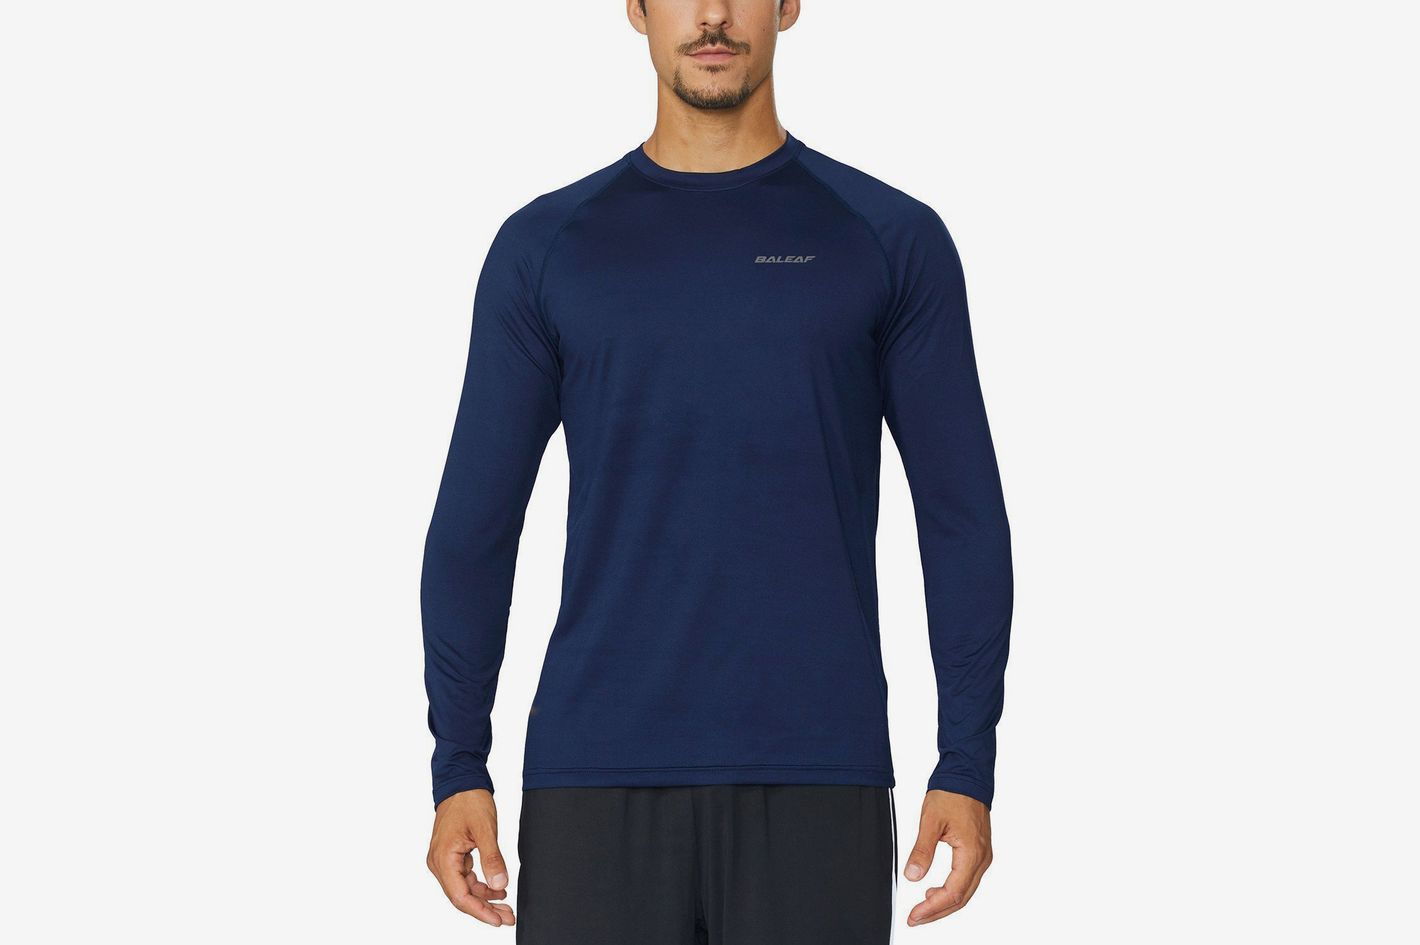 ca4233534c3 8 Best Running Shirts for Men That Wick Moisture 2018